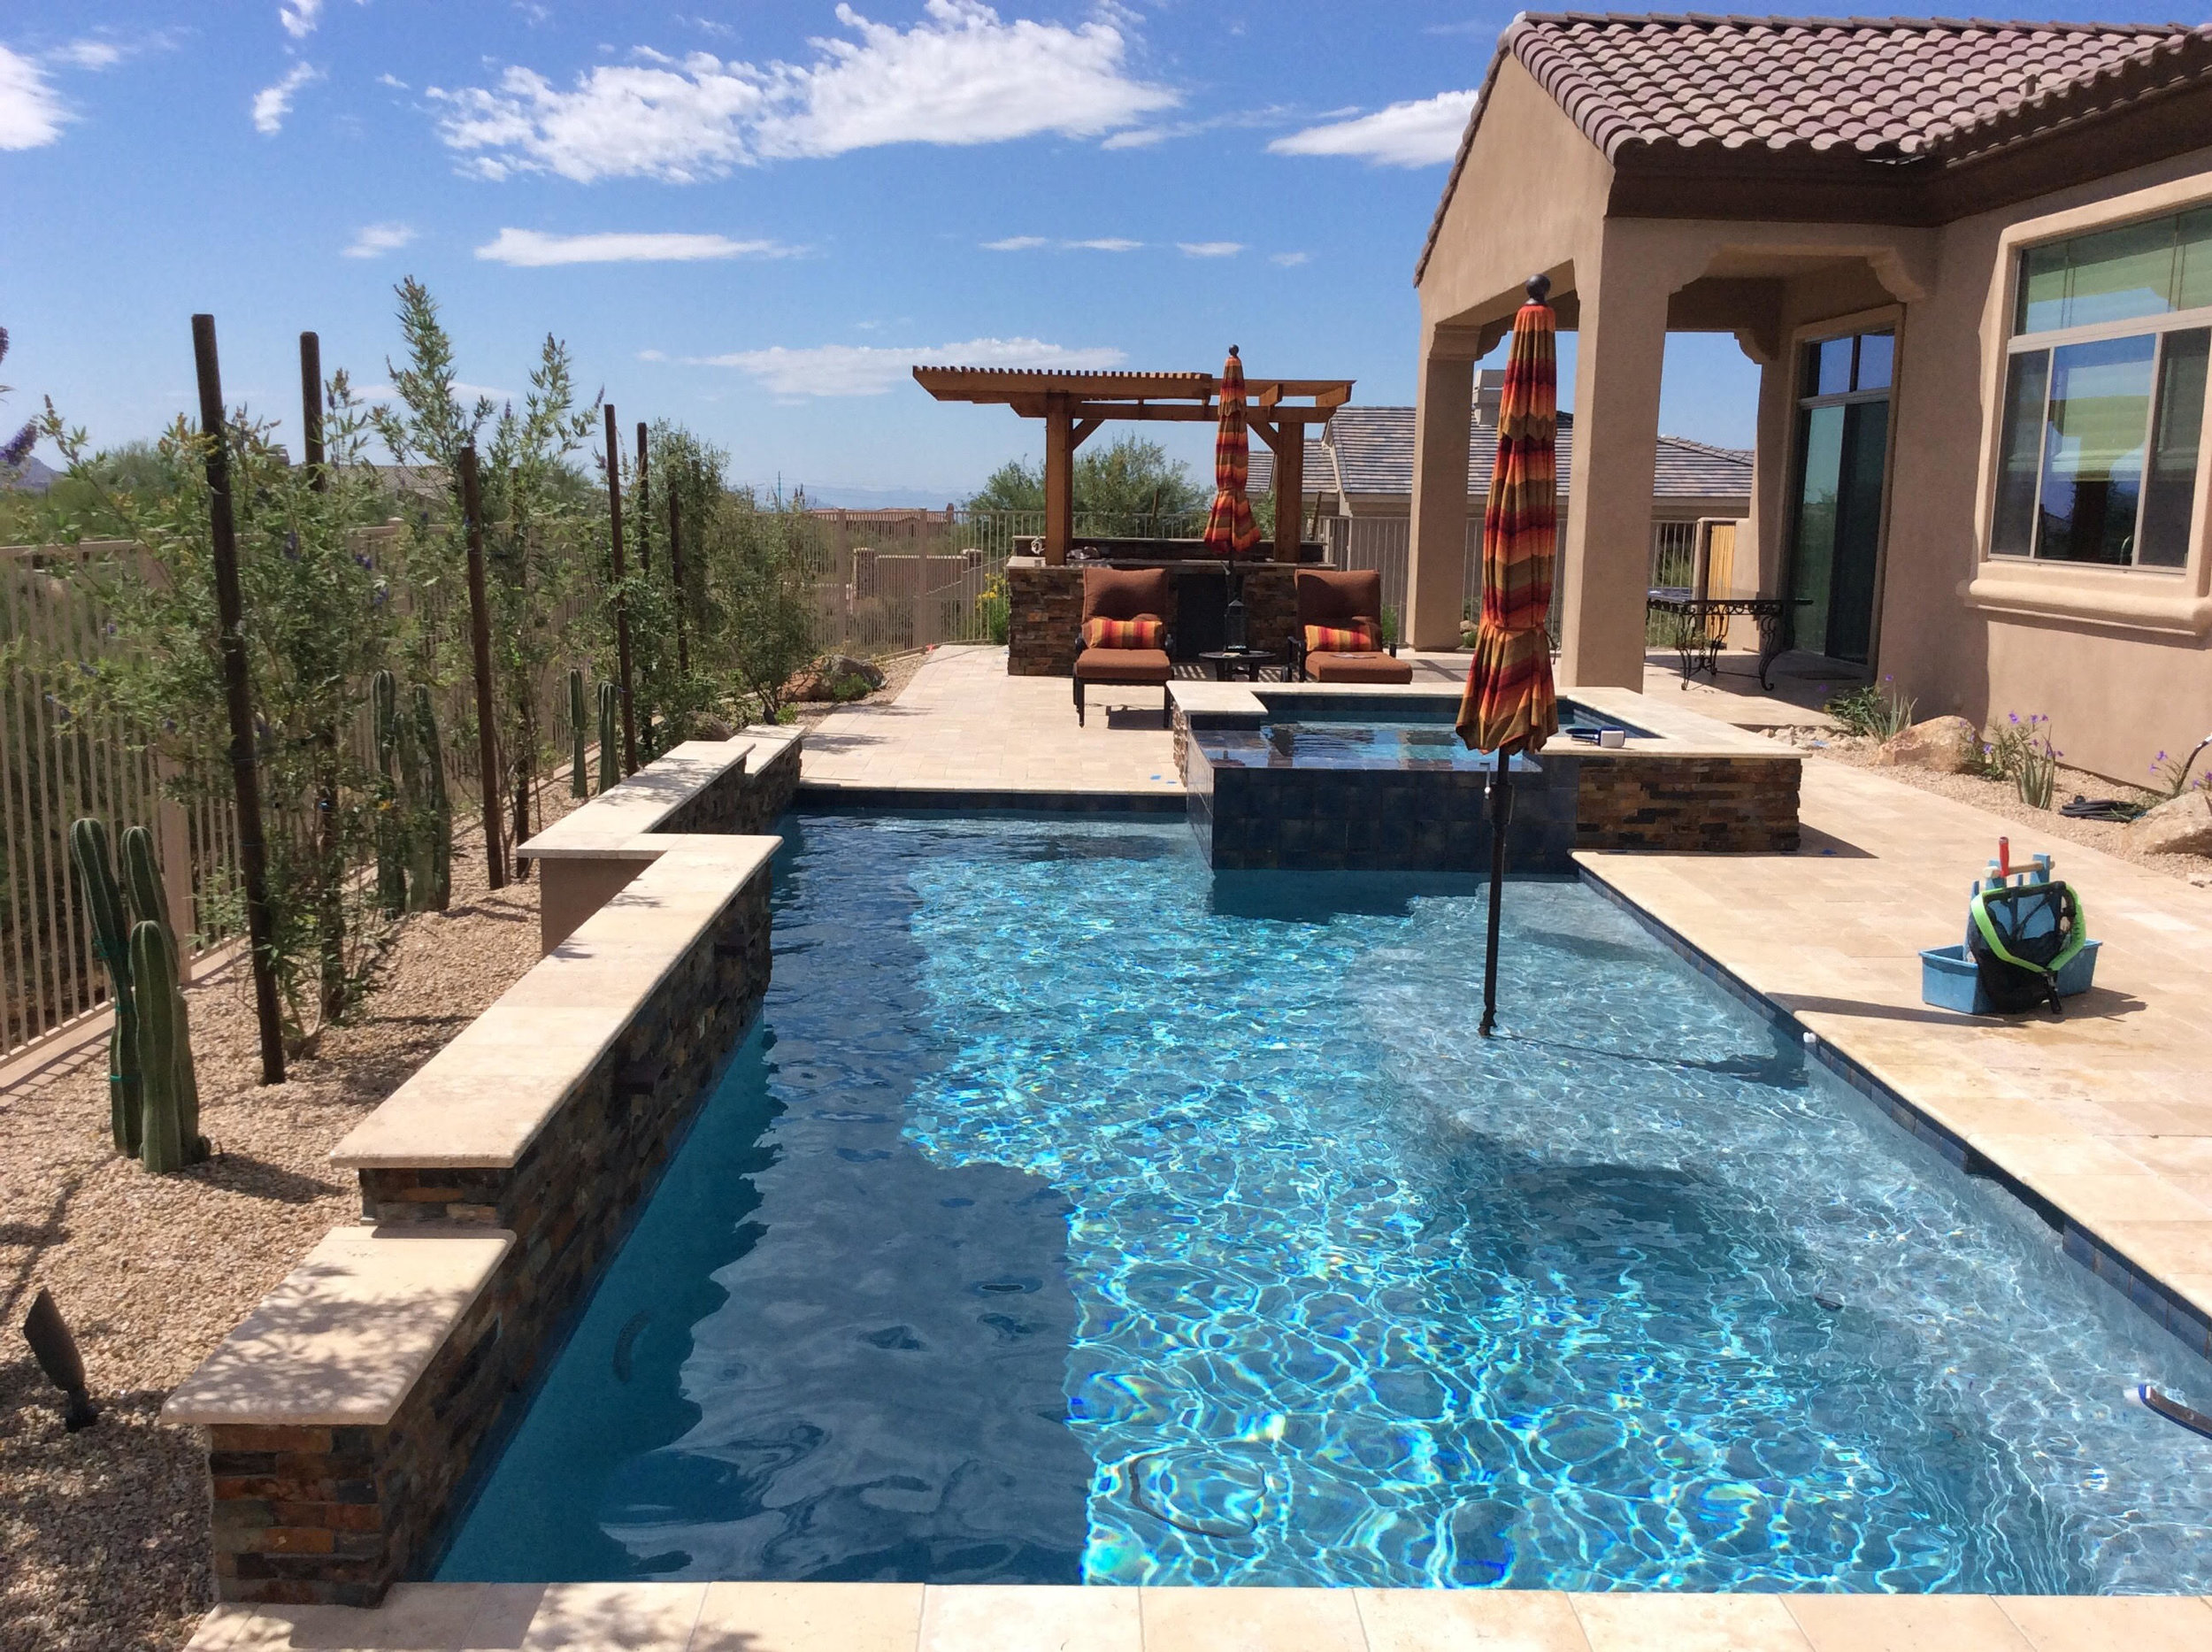 Papania Pool Travertine and Spa.jpg